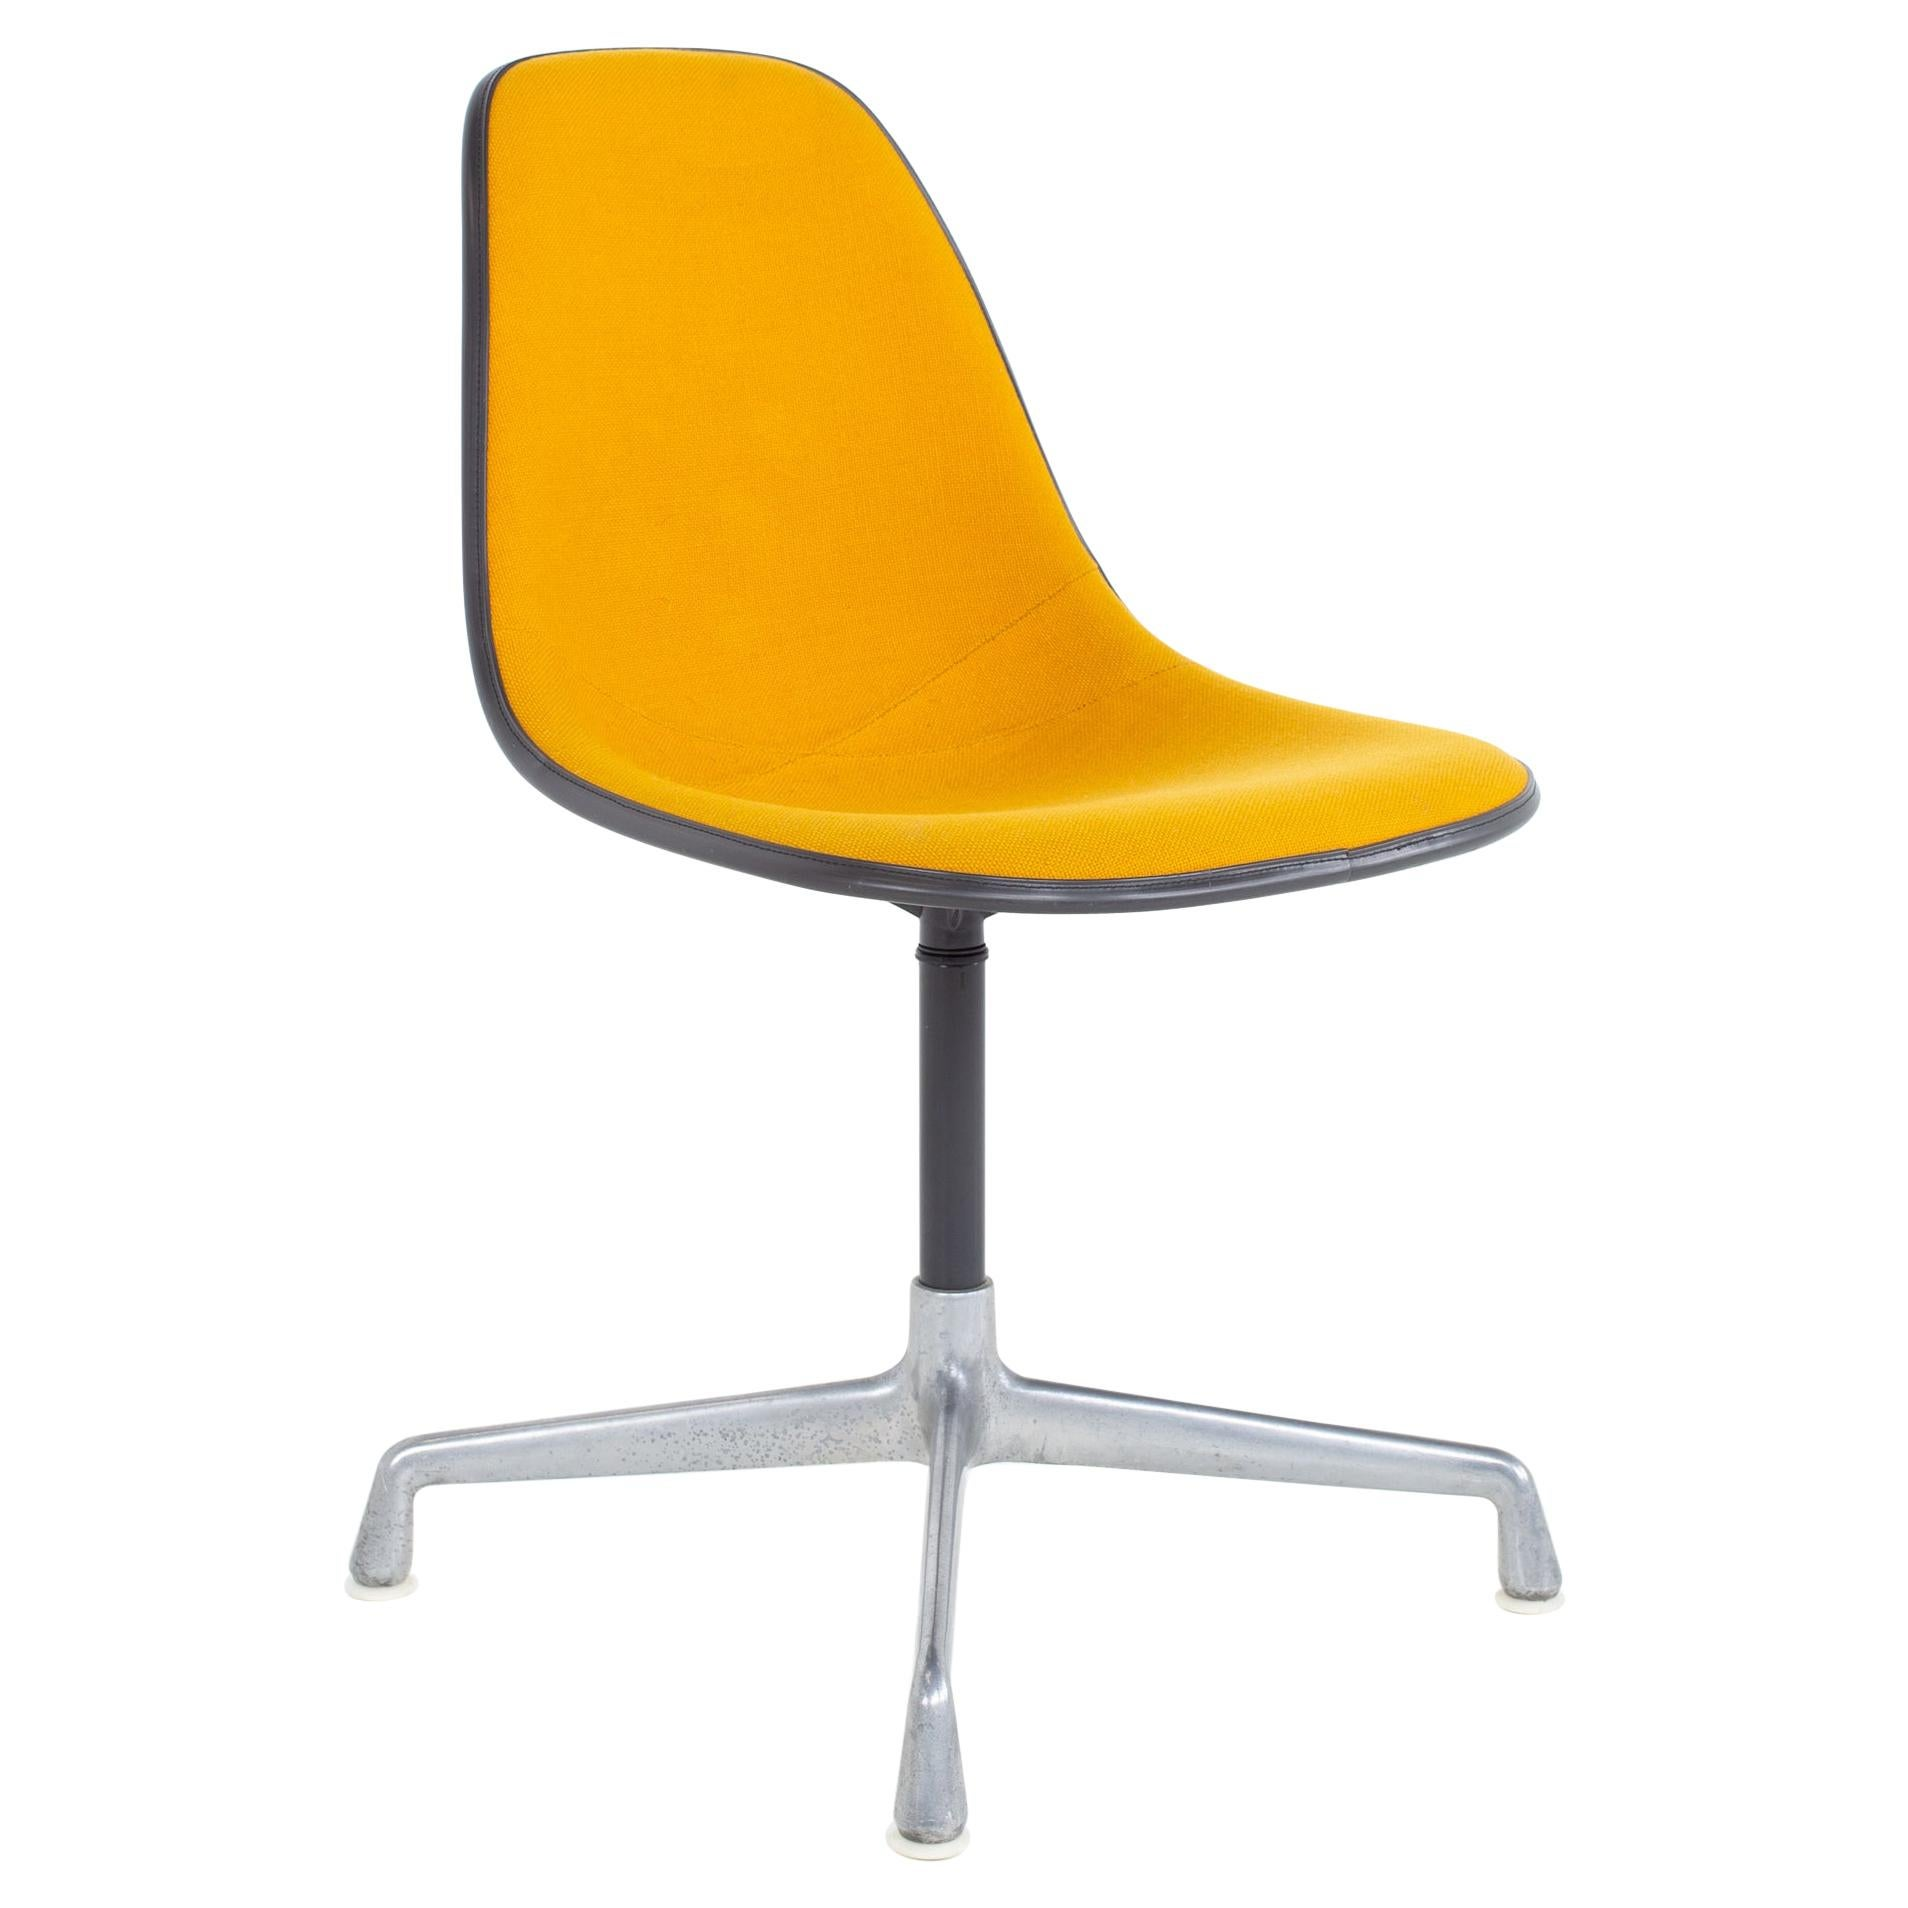 Charles and Ray Eames for Herman Miller Mid Century Orange Upholstered Shell Cha